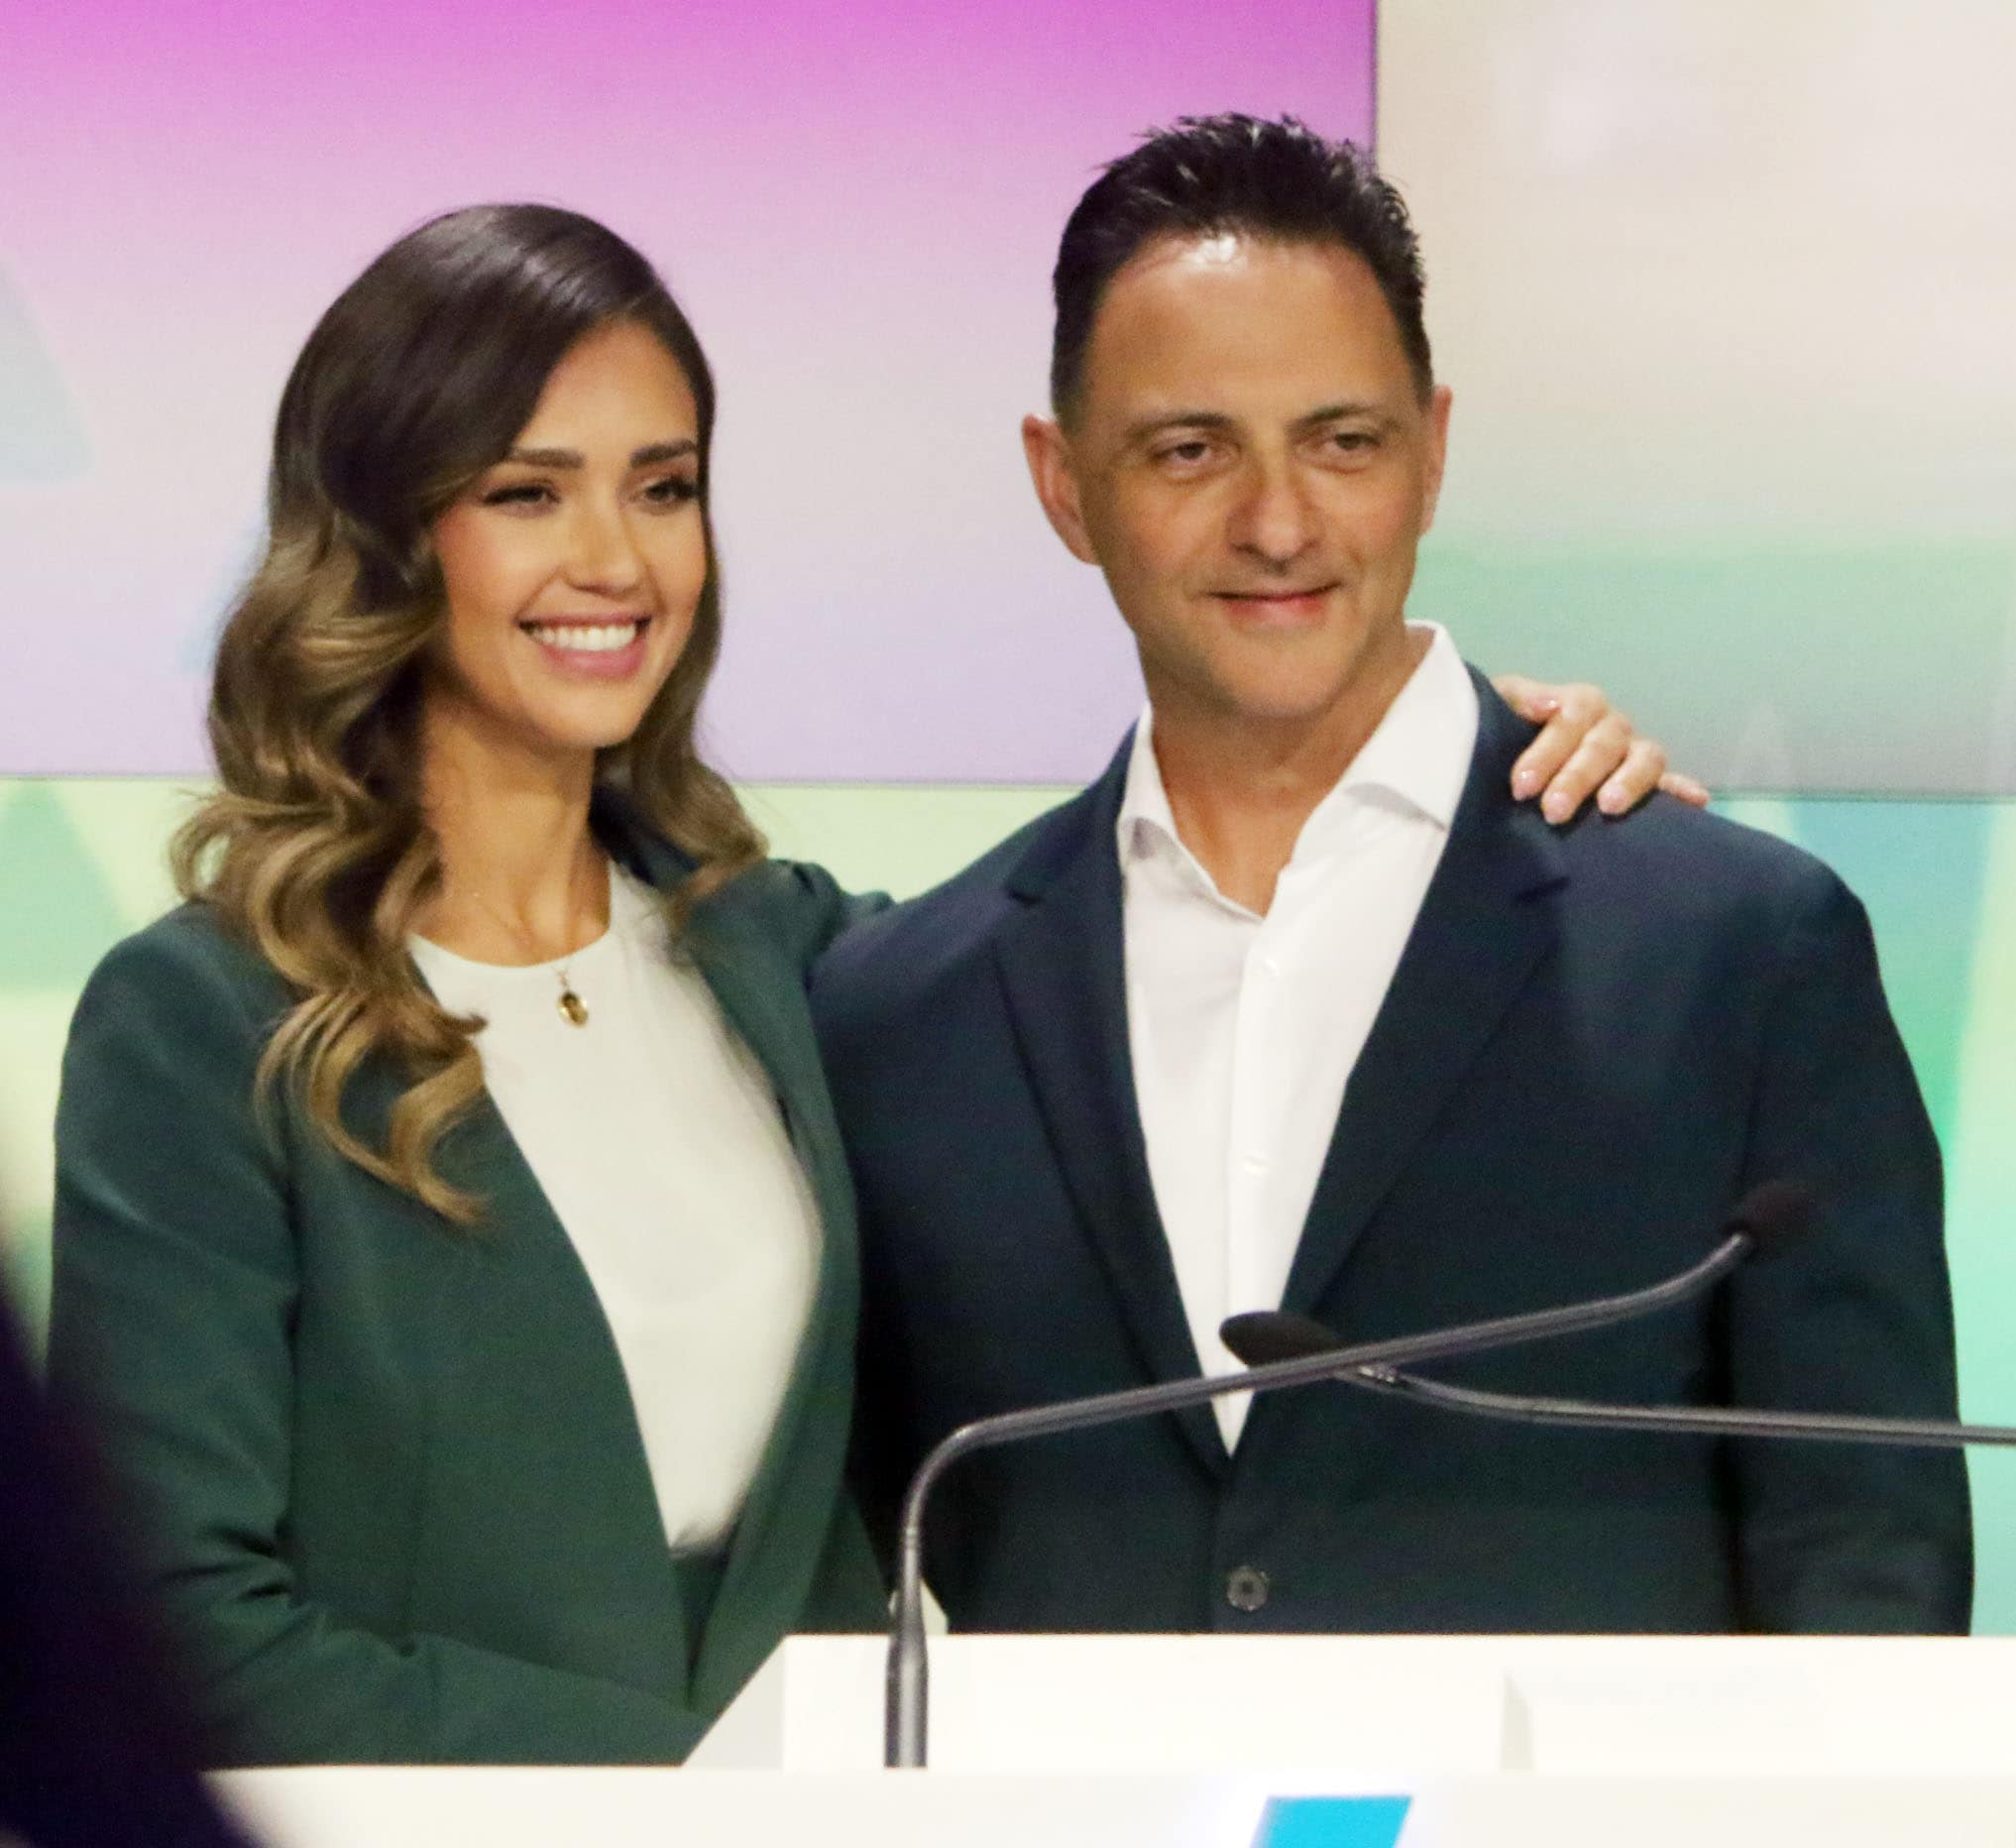 The Honest Company founder and Chief Creative Officer Jessica Alba and CEO Nick Vlahos ring the Nasdaq Stock Market opening bell on May 5, 2021